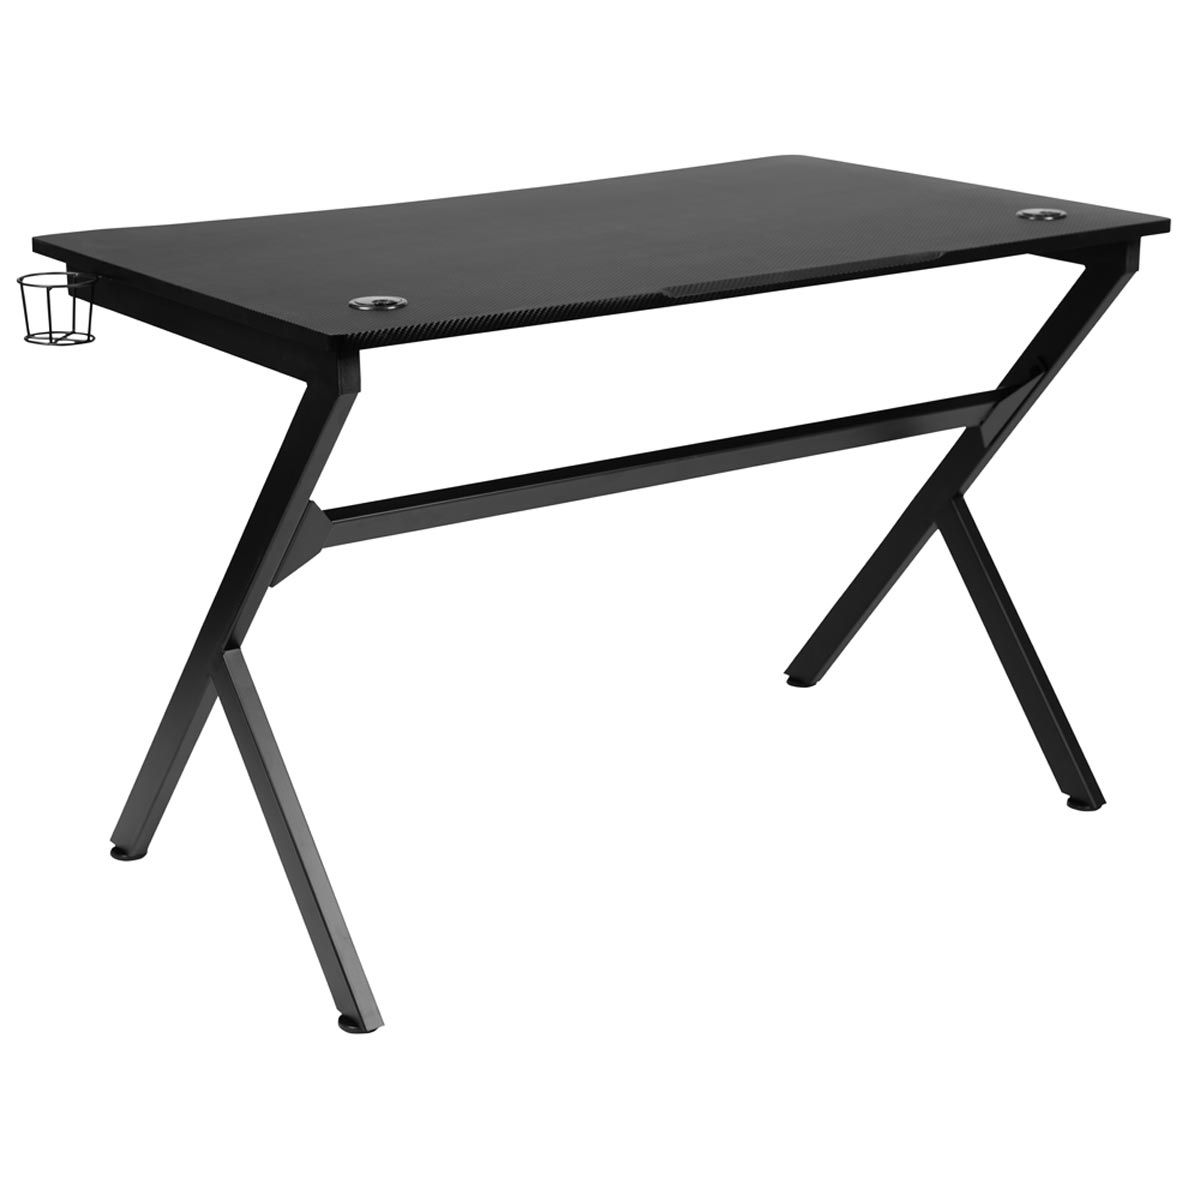 45.25 in. Wide Computer Gaming Desk with Cupholder & Headphone Hook